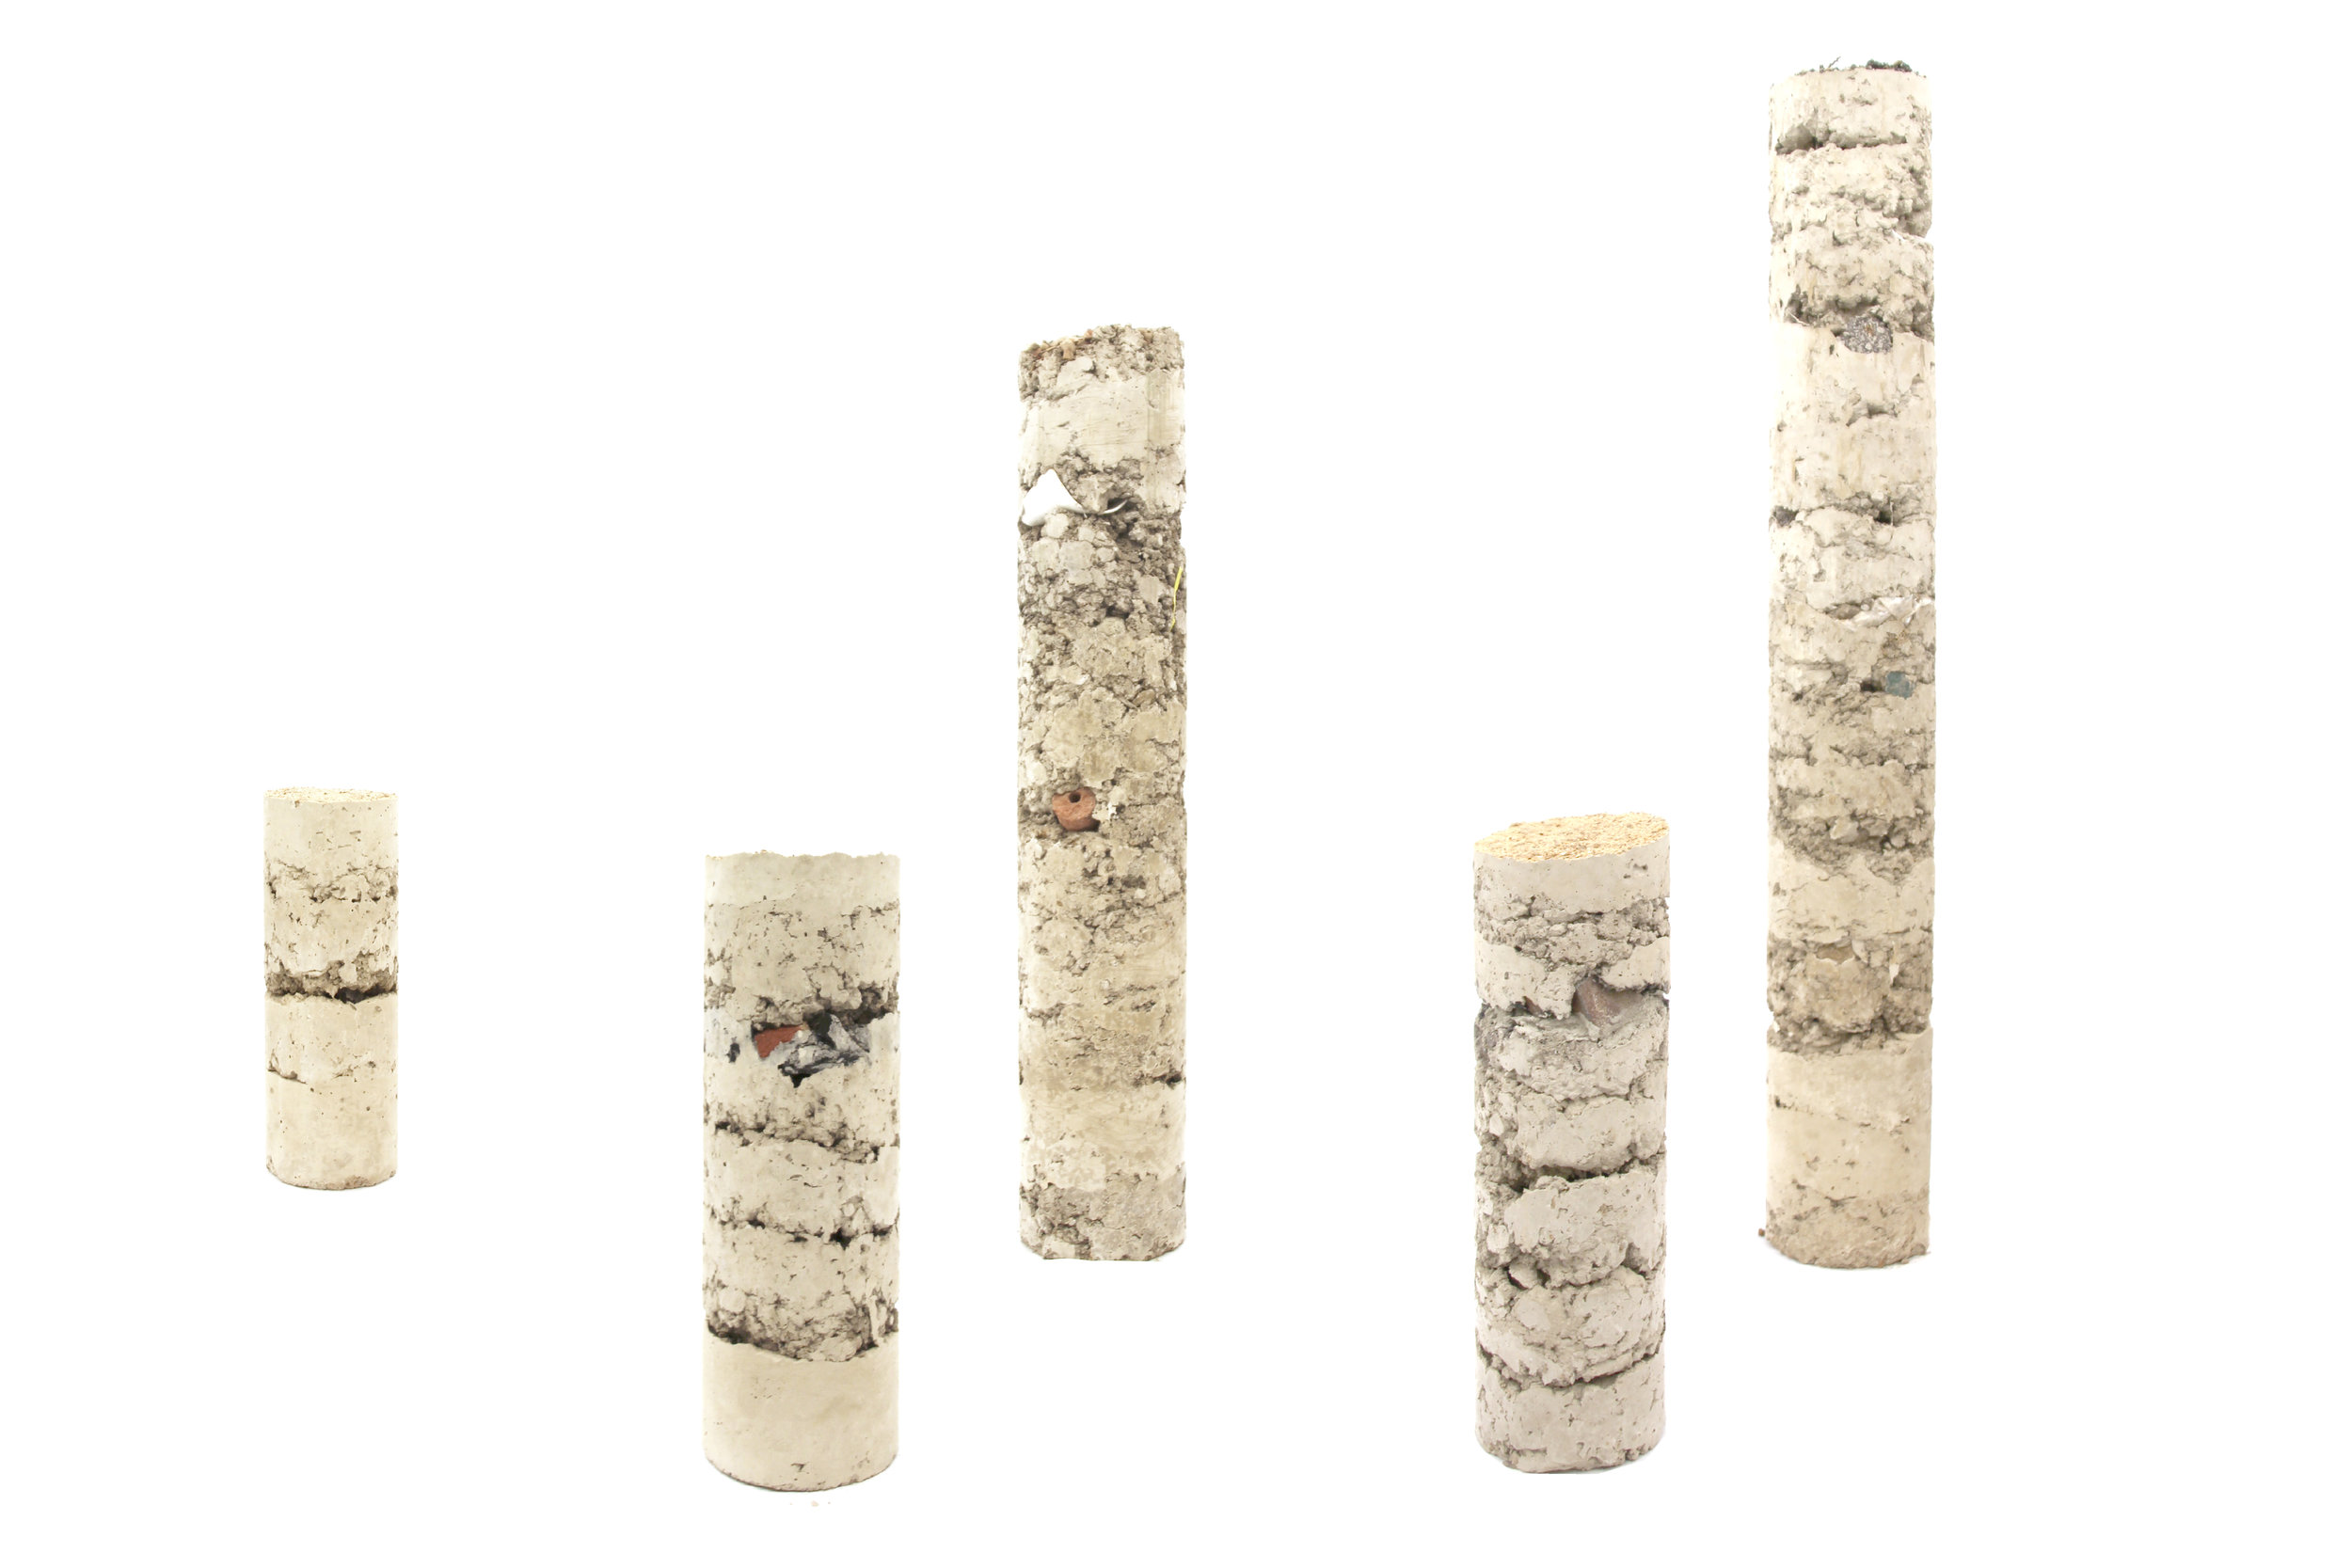 Soil (with everything it contains) and cement.  Approximate Core  site marker prototypes.